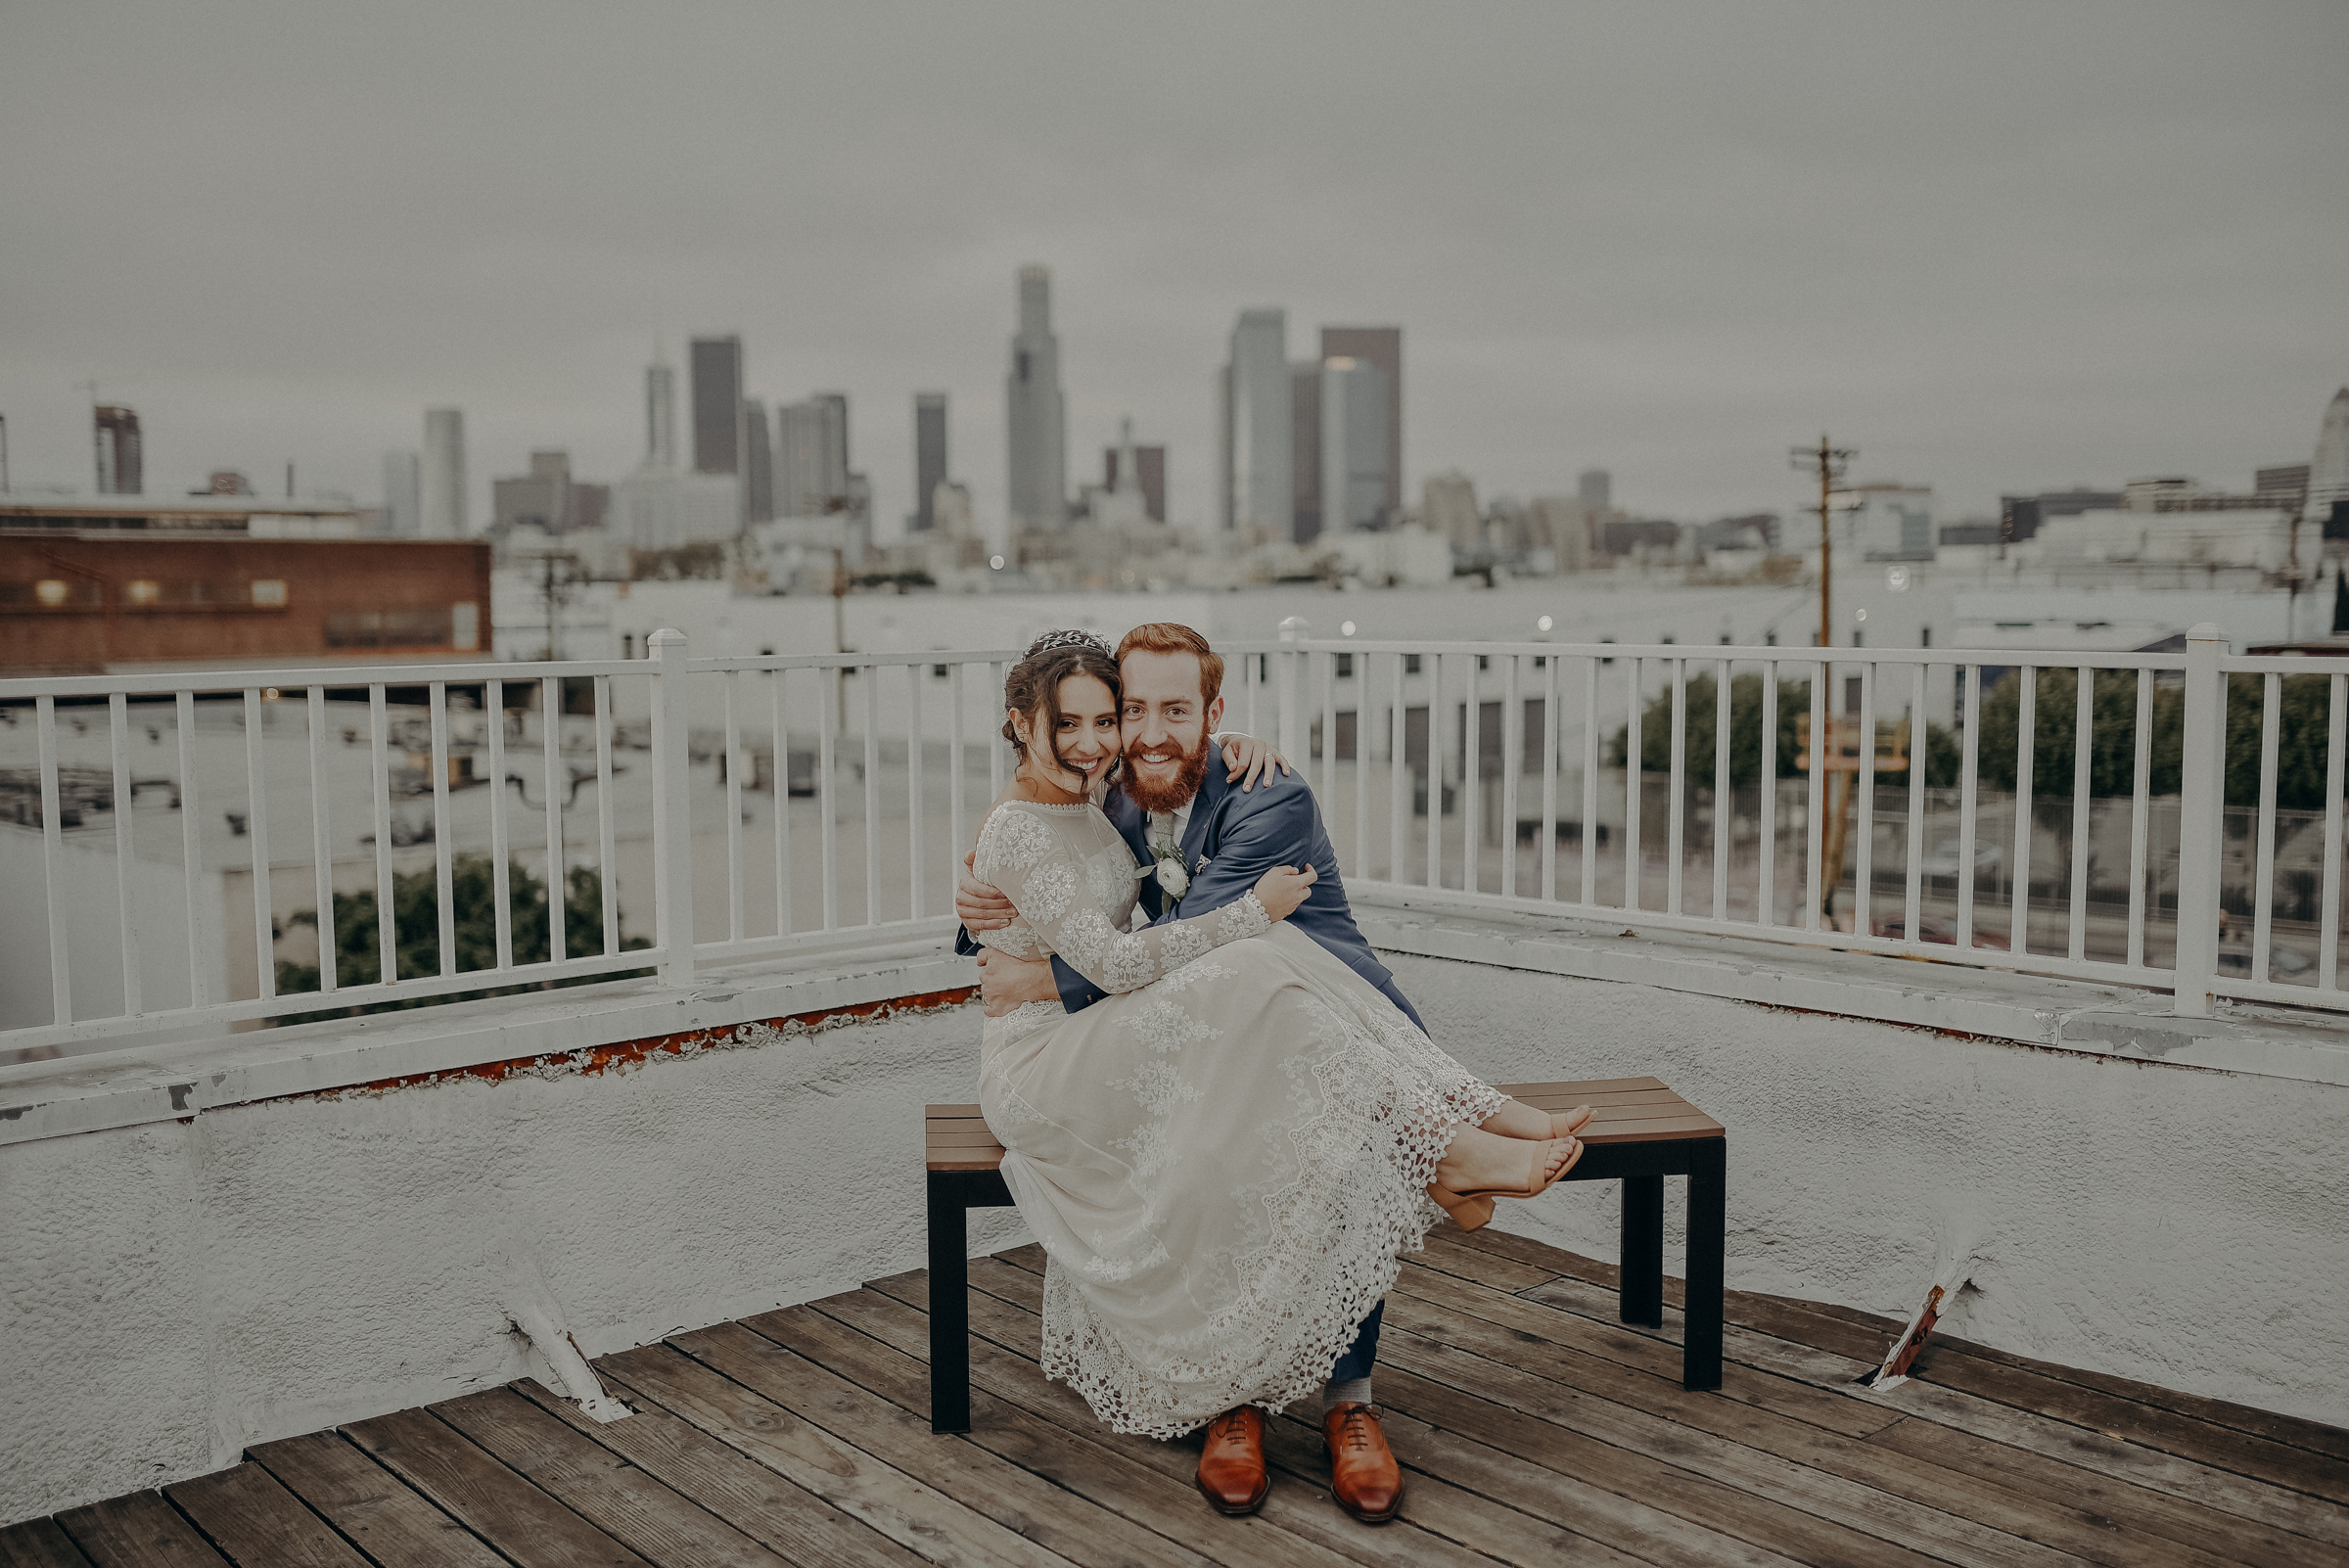 Isaiah + Taylor Photography - The Unique Space Wedding, Los Angeles Wedding Photography 139.jpg